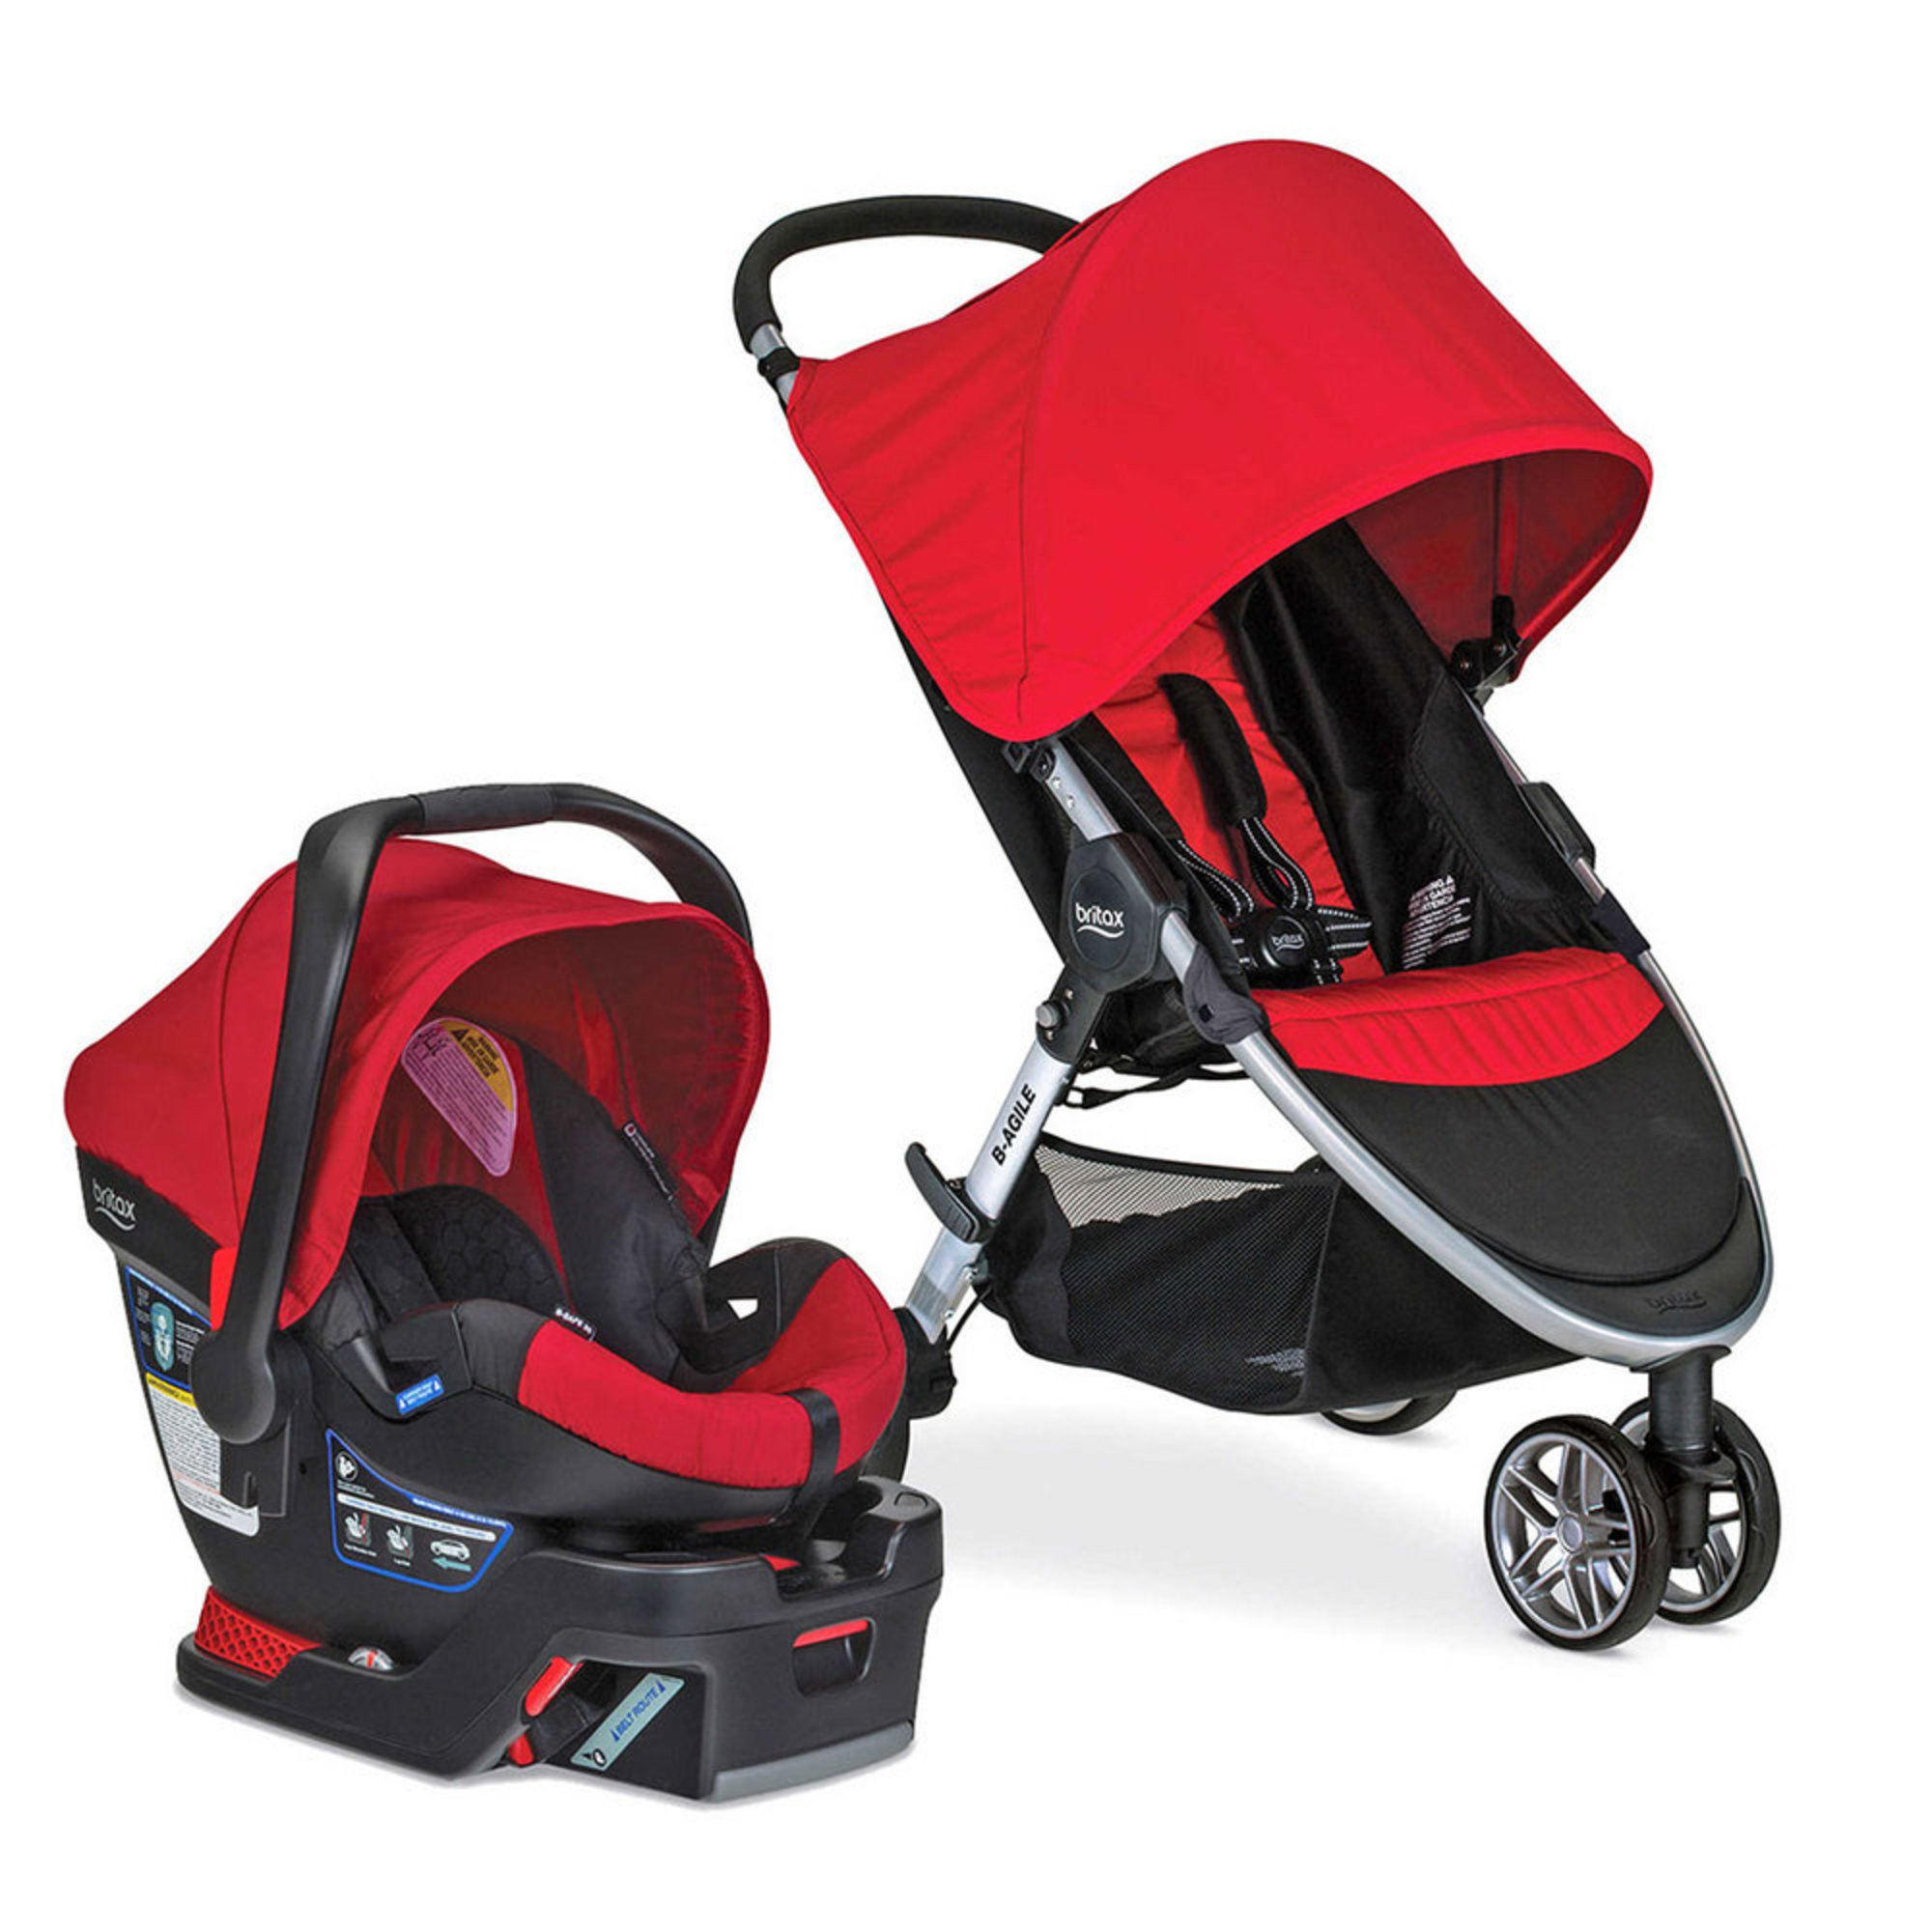 britax 2016 b agile 3 travel system w b safe 35 infant car seat red travel systems kids. Black Bedroom Furniture Sets. Home Design Ideas